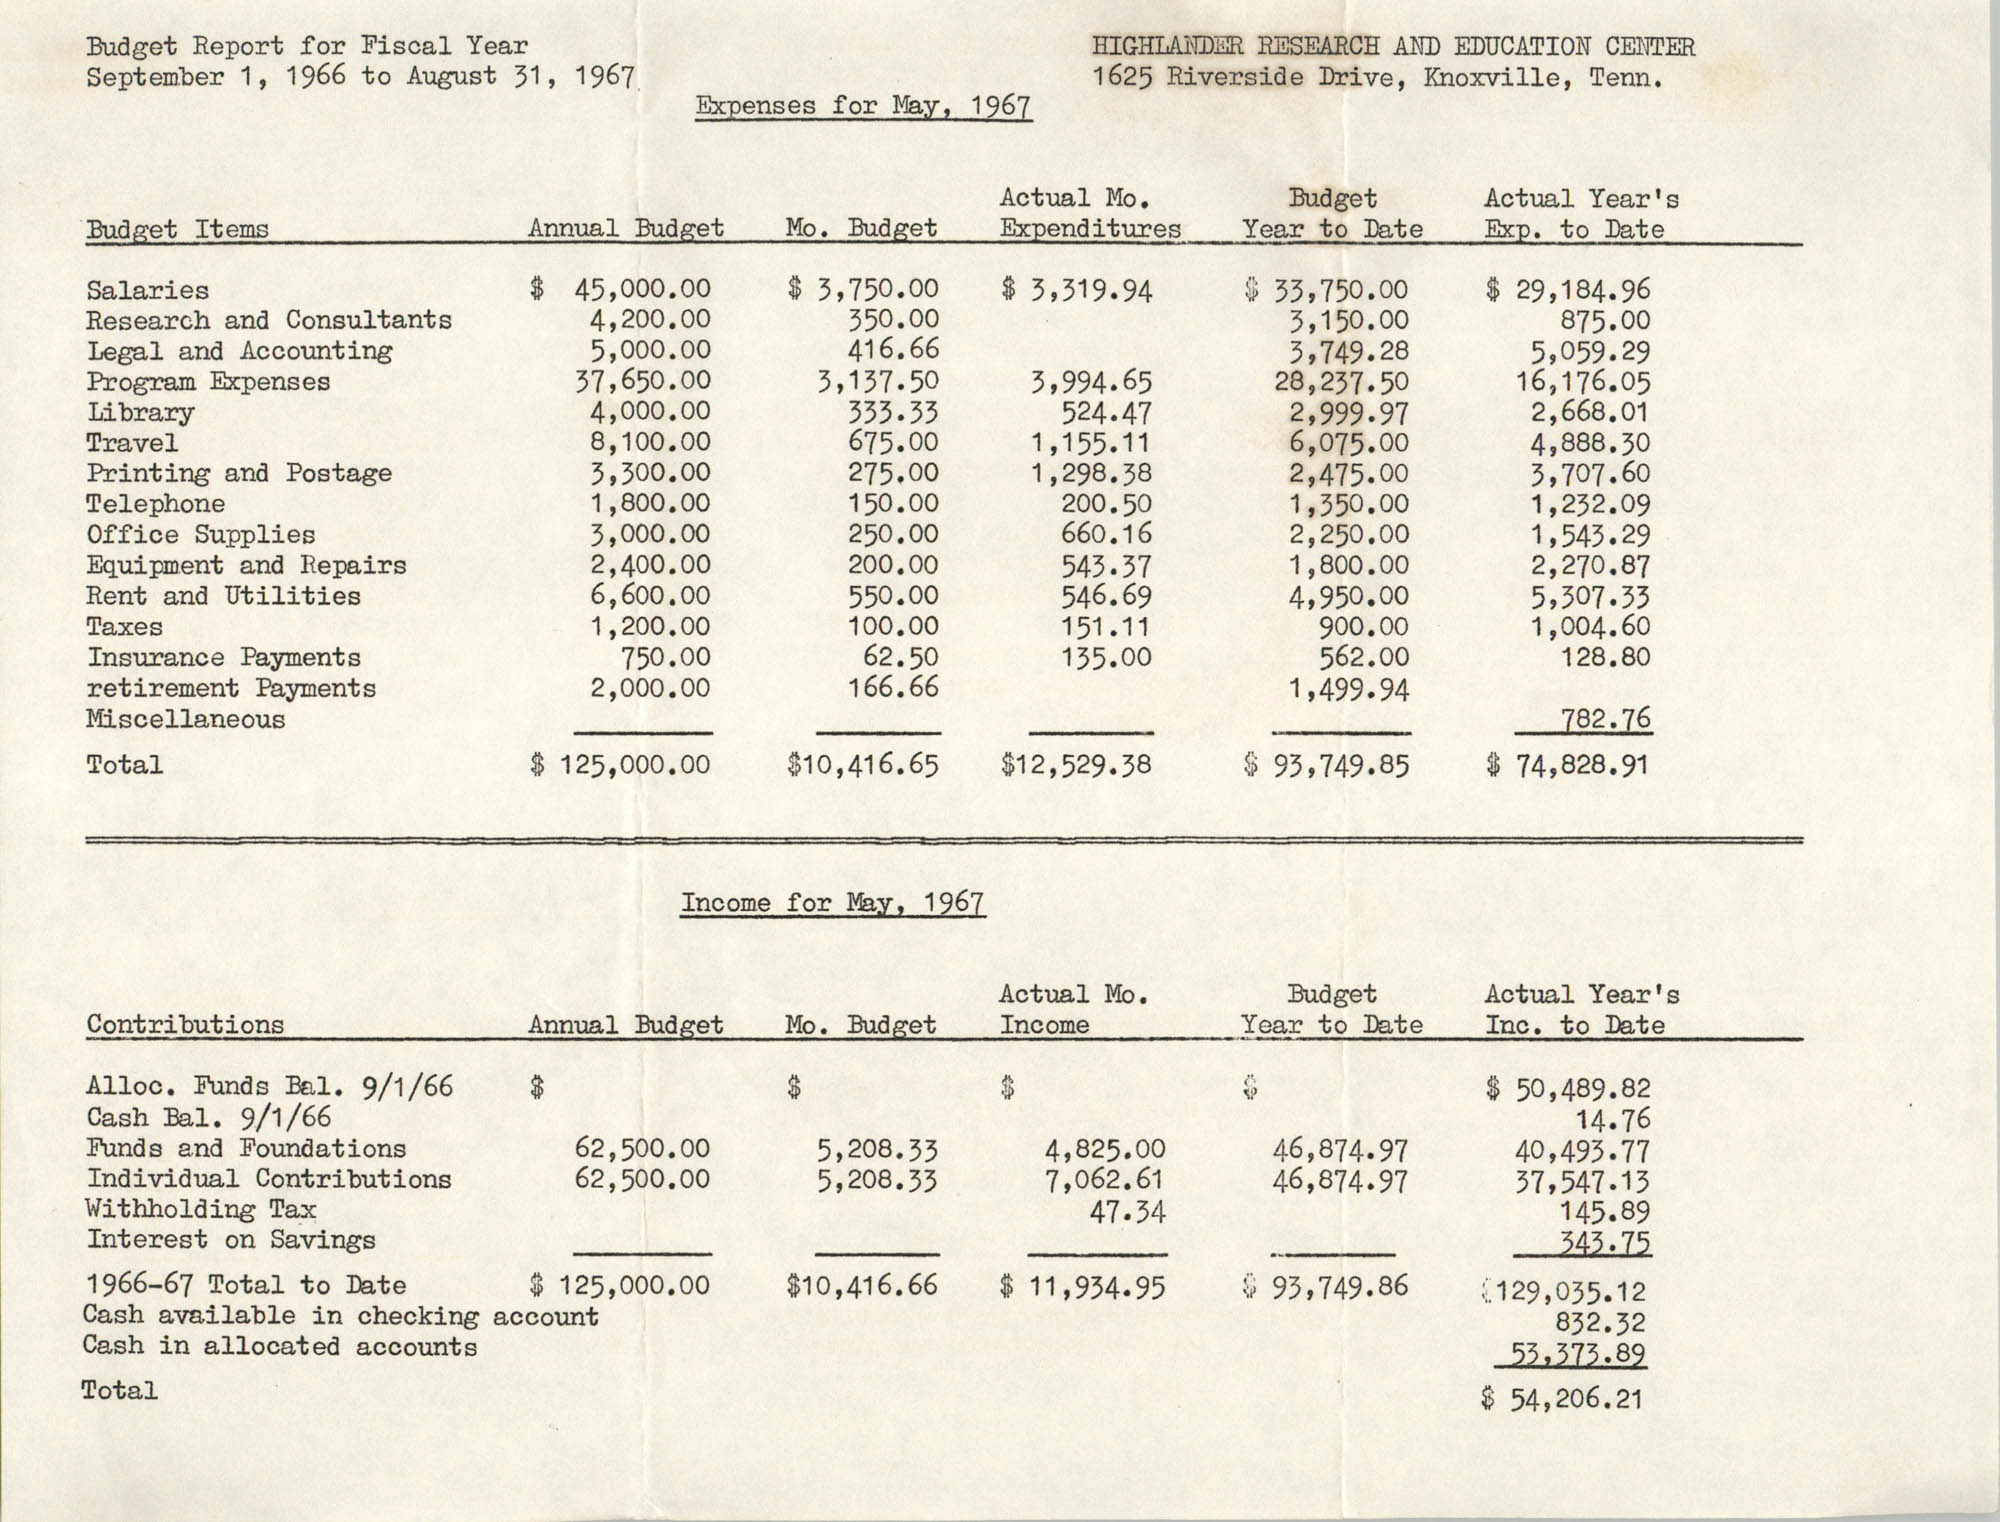 Expenses and Income for May 1967